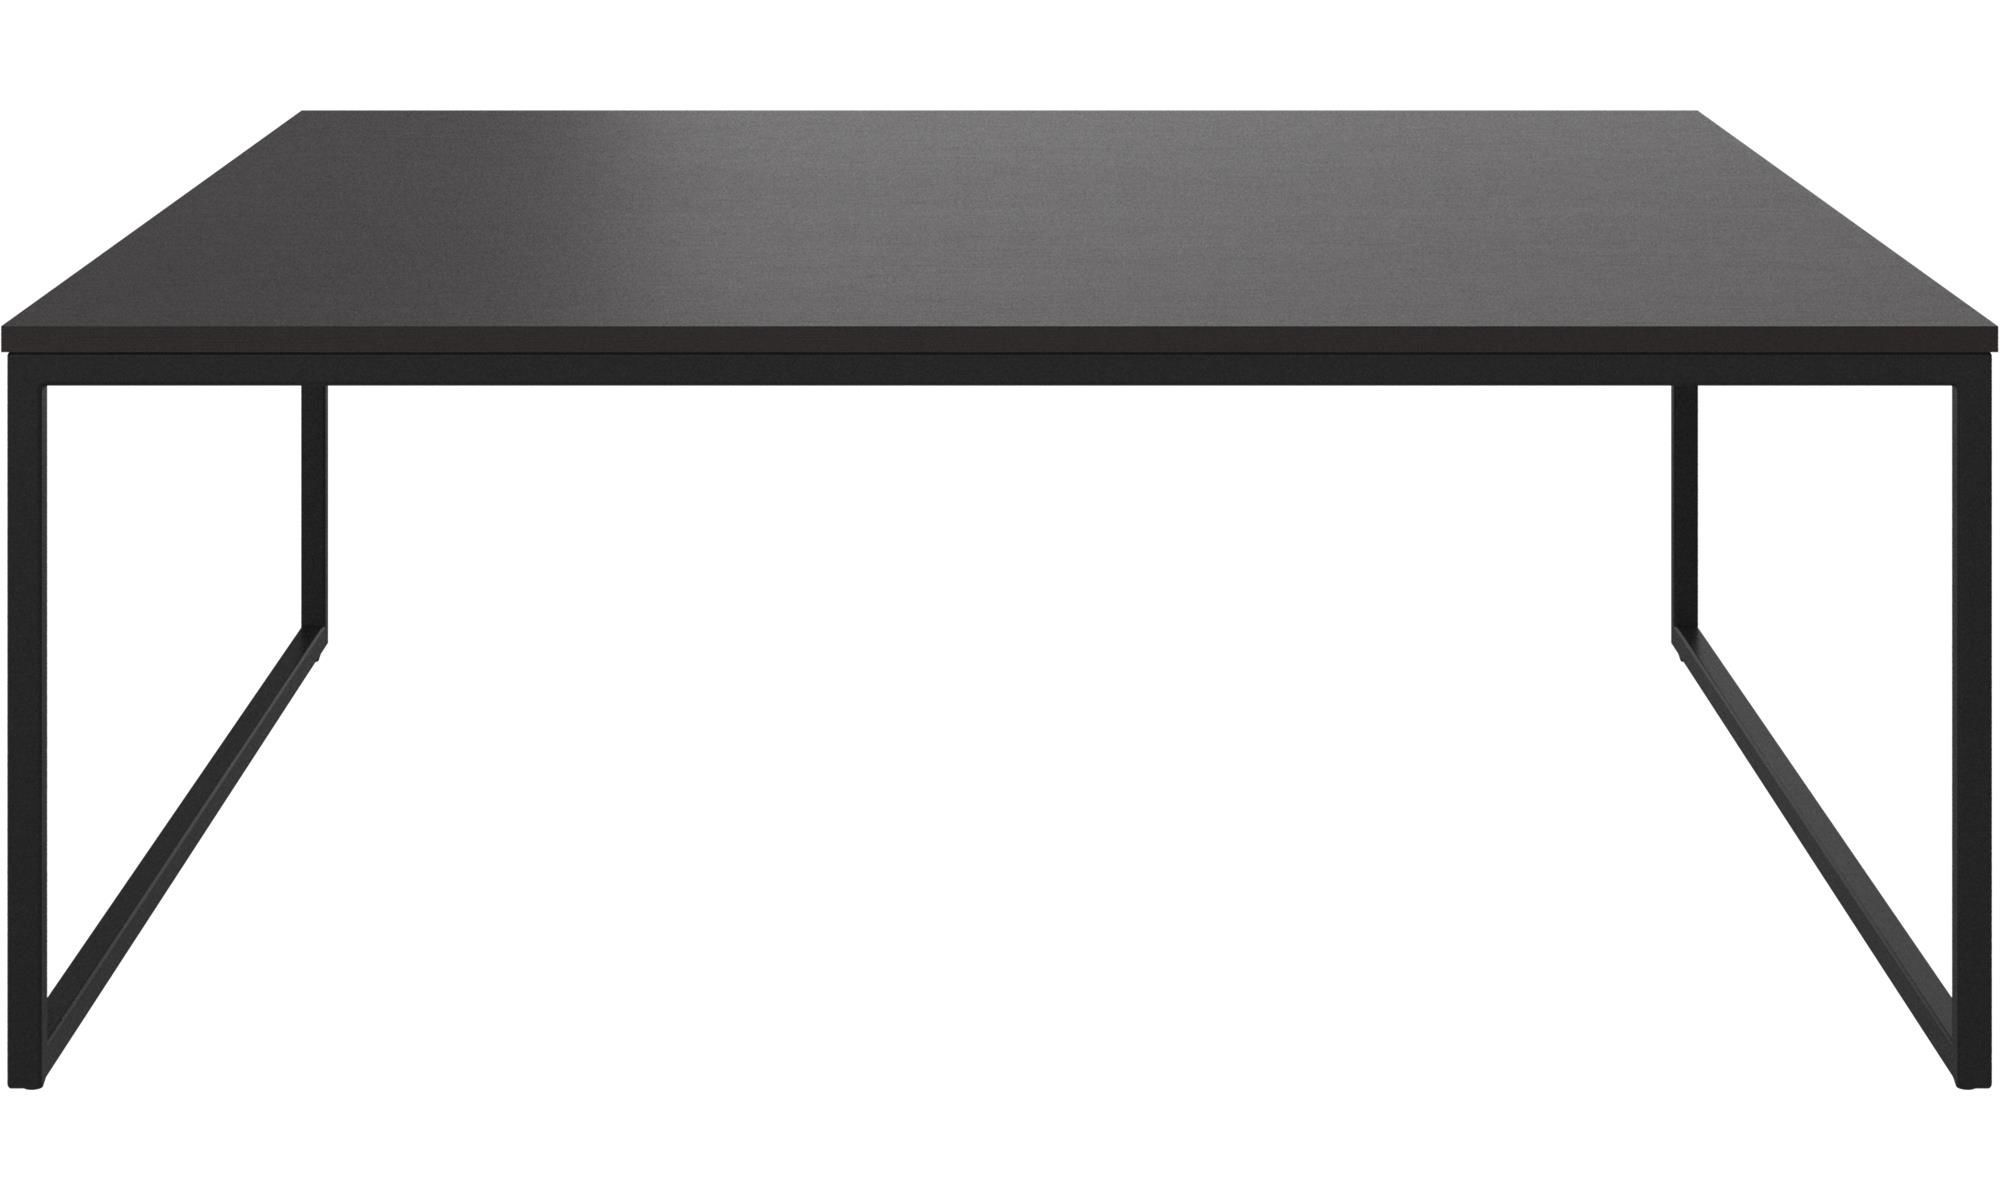 Coffee Tables Lugo Coffee Table Rectangular Black Oak Coffee Table Square Coffee Table Modern Coffee Tables [ 1200 x 2000 Pixel ]